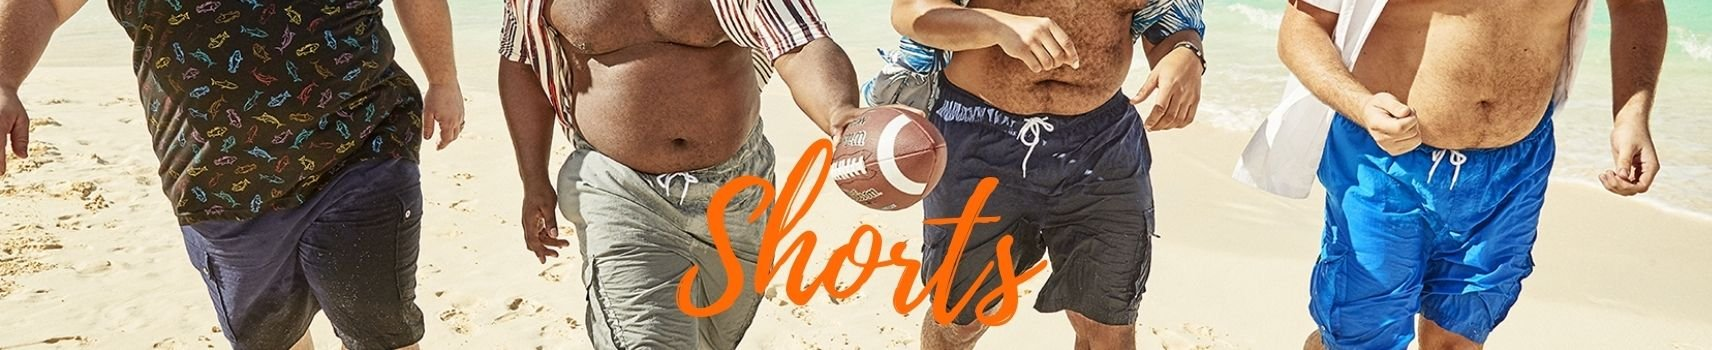 Plus sizes shorts and swimwear for big and tall men